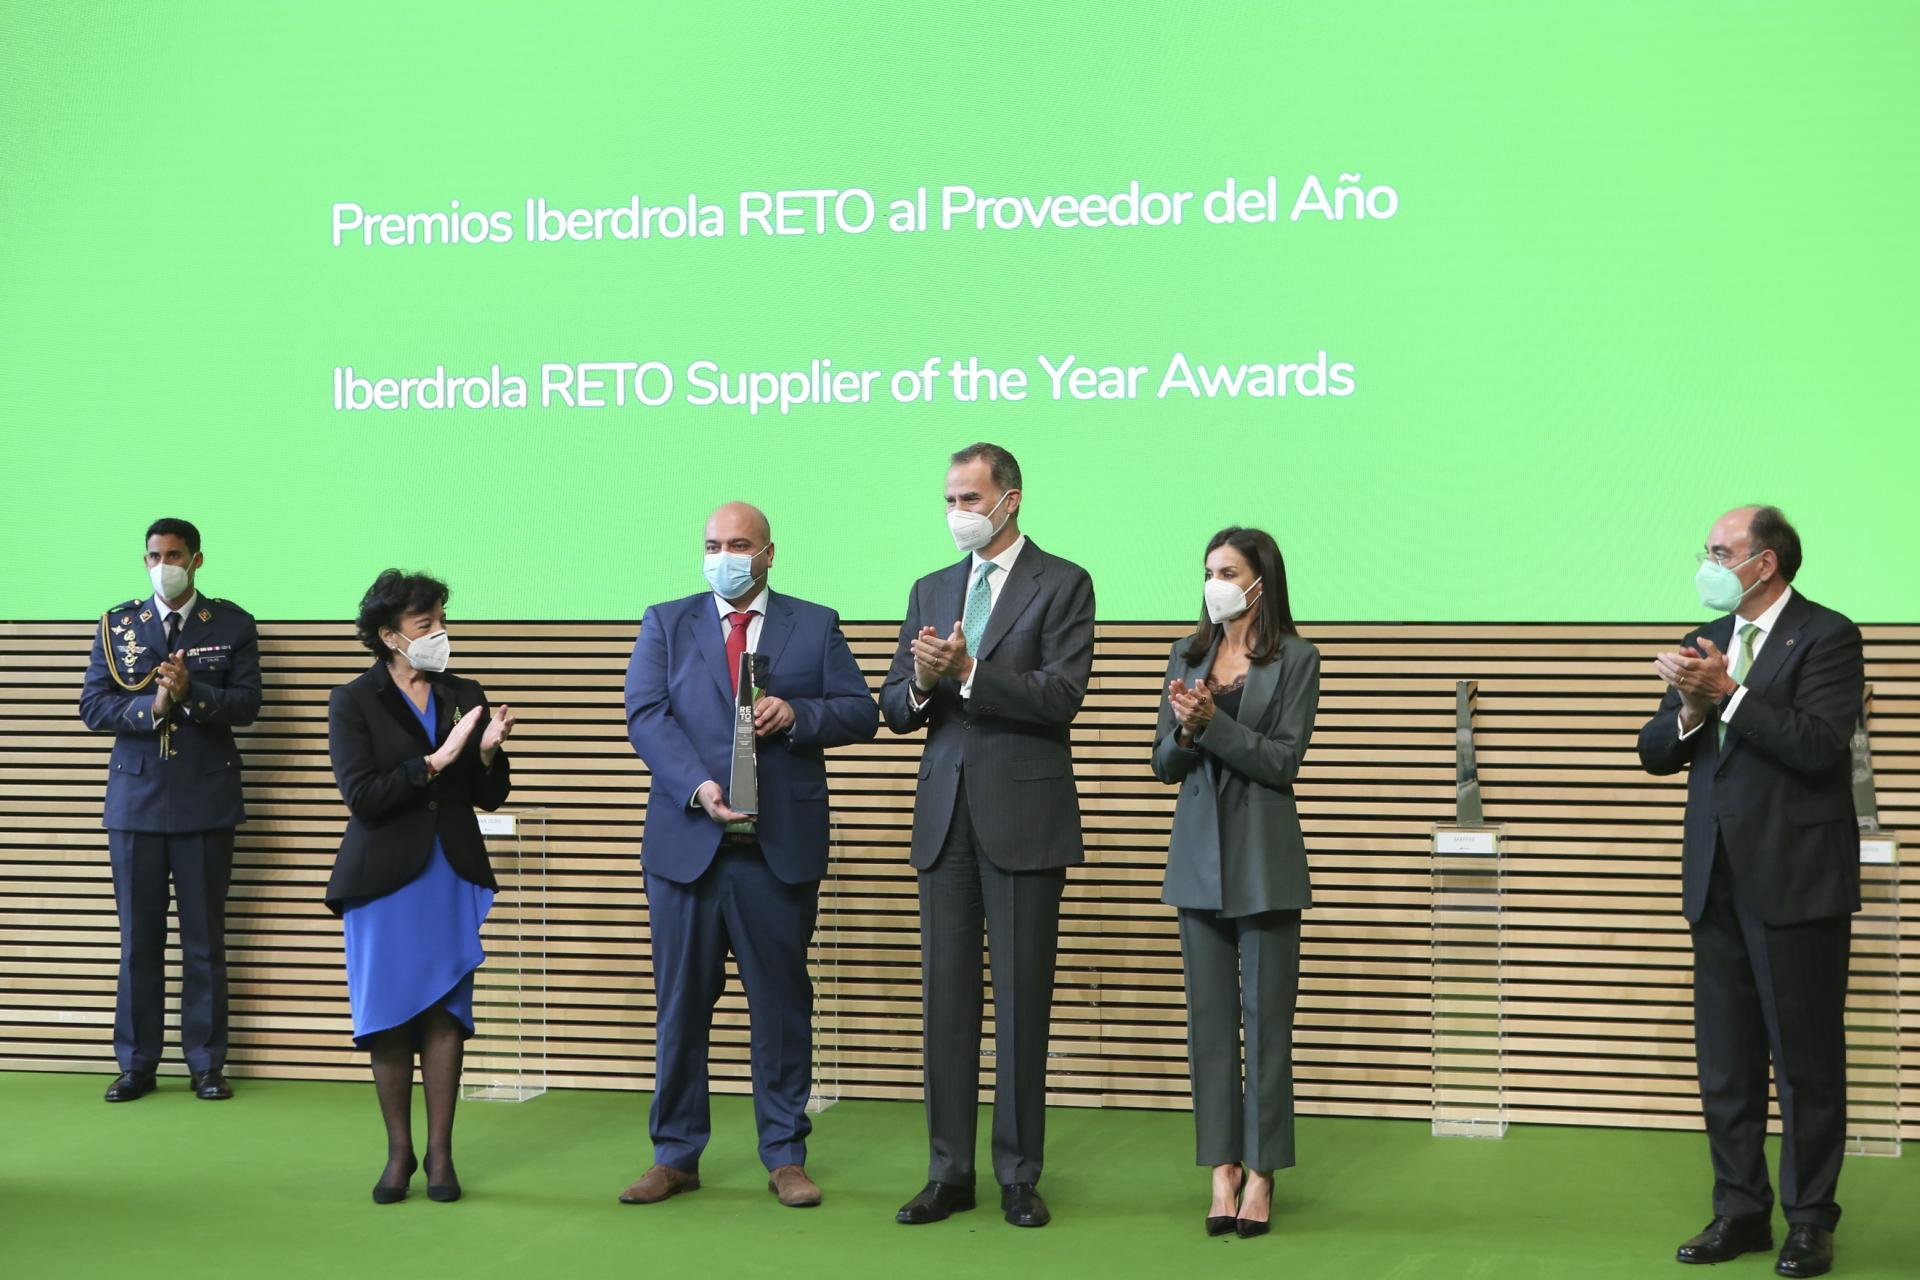 Van Oord receives 2021 RETO award for Iberdrola supplier of the year